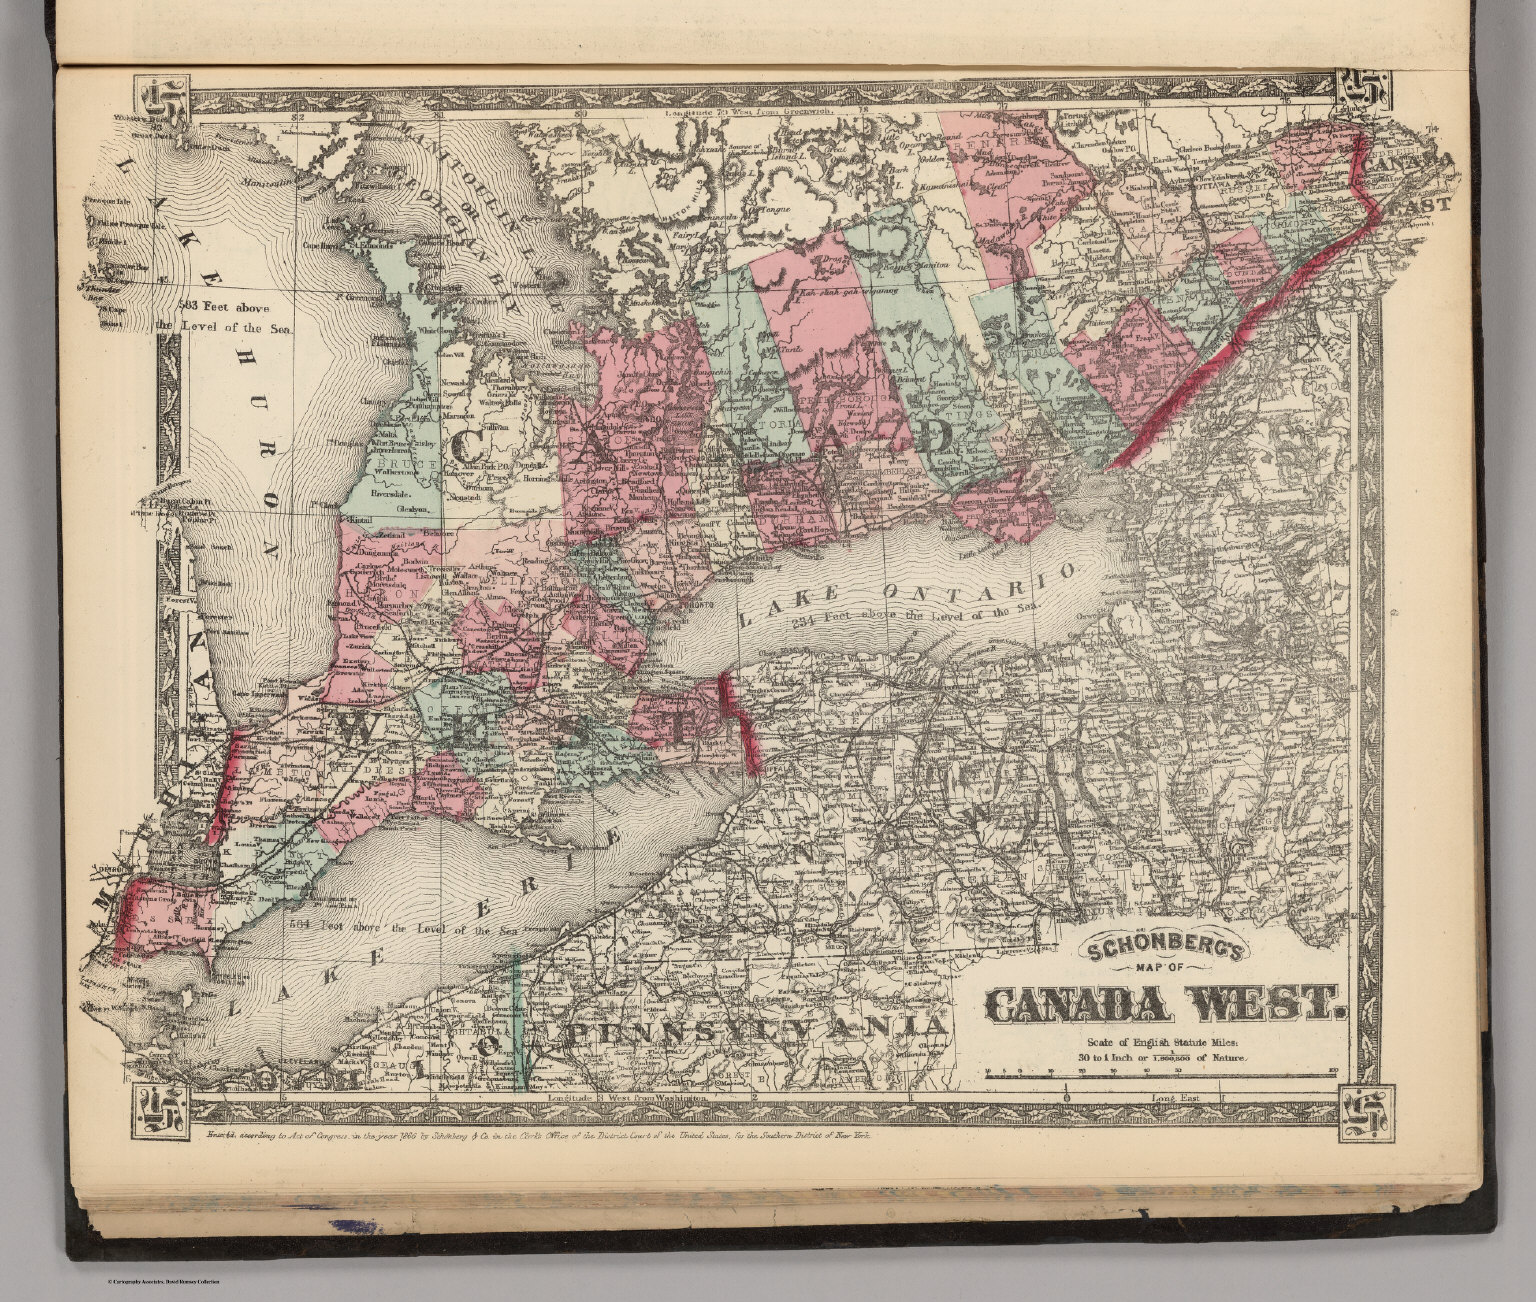 schonbergs map of canada west